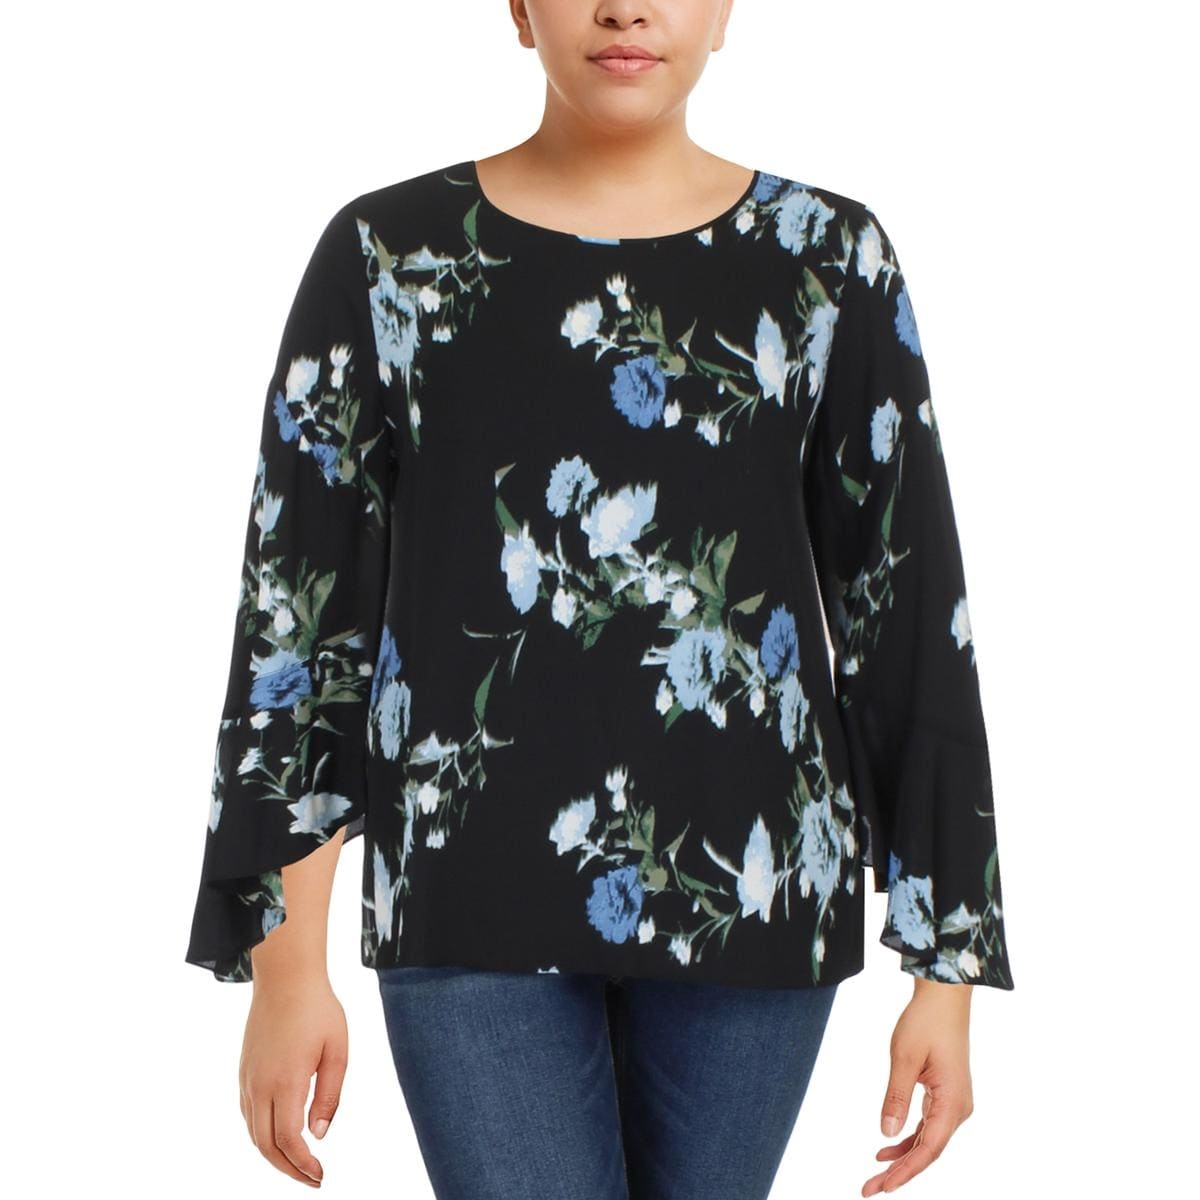 c4406e128acb Shop Vince Camuto Womens Blouse Floral Print Bell Sleeves - Free Shipping  On Orders Over $45 - Overstock - 22866741